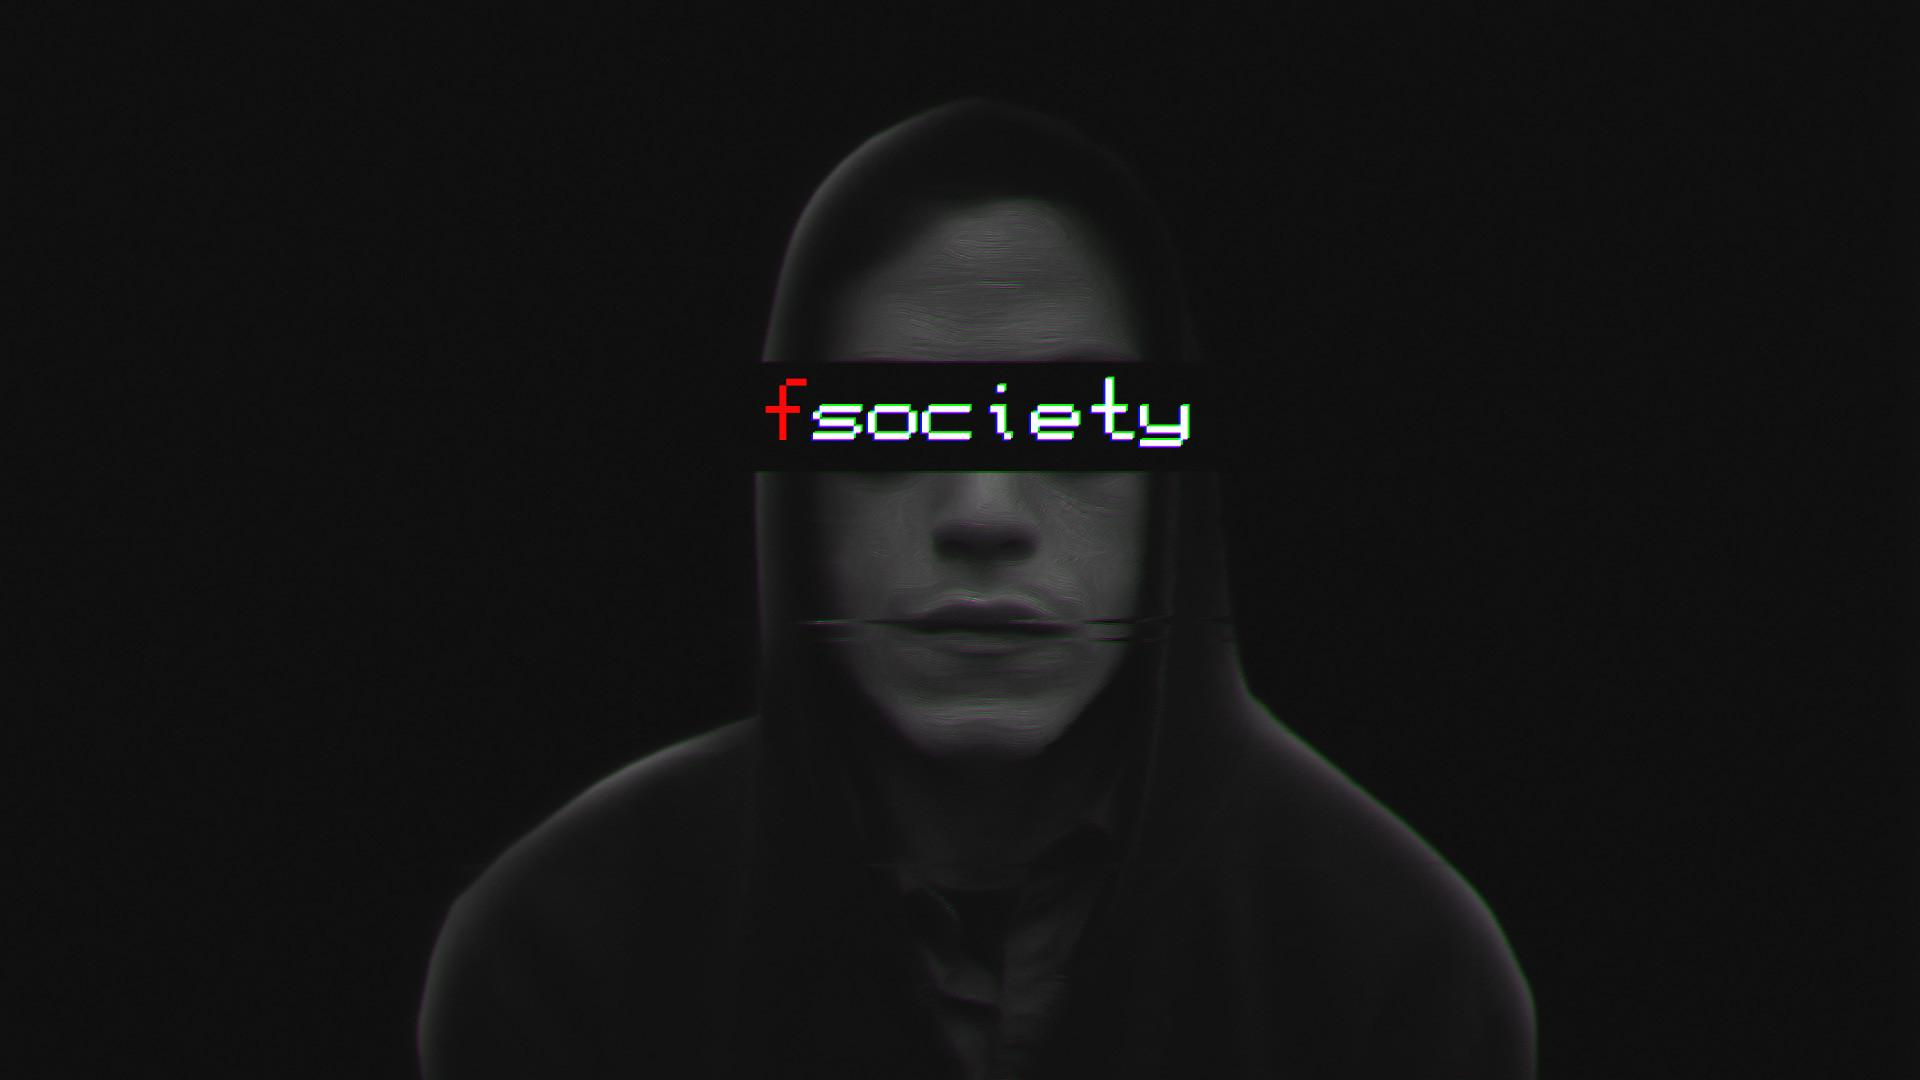 75+ Fsociety Wallpapers